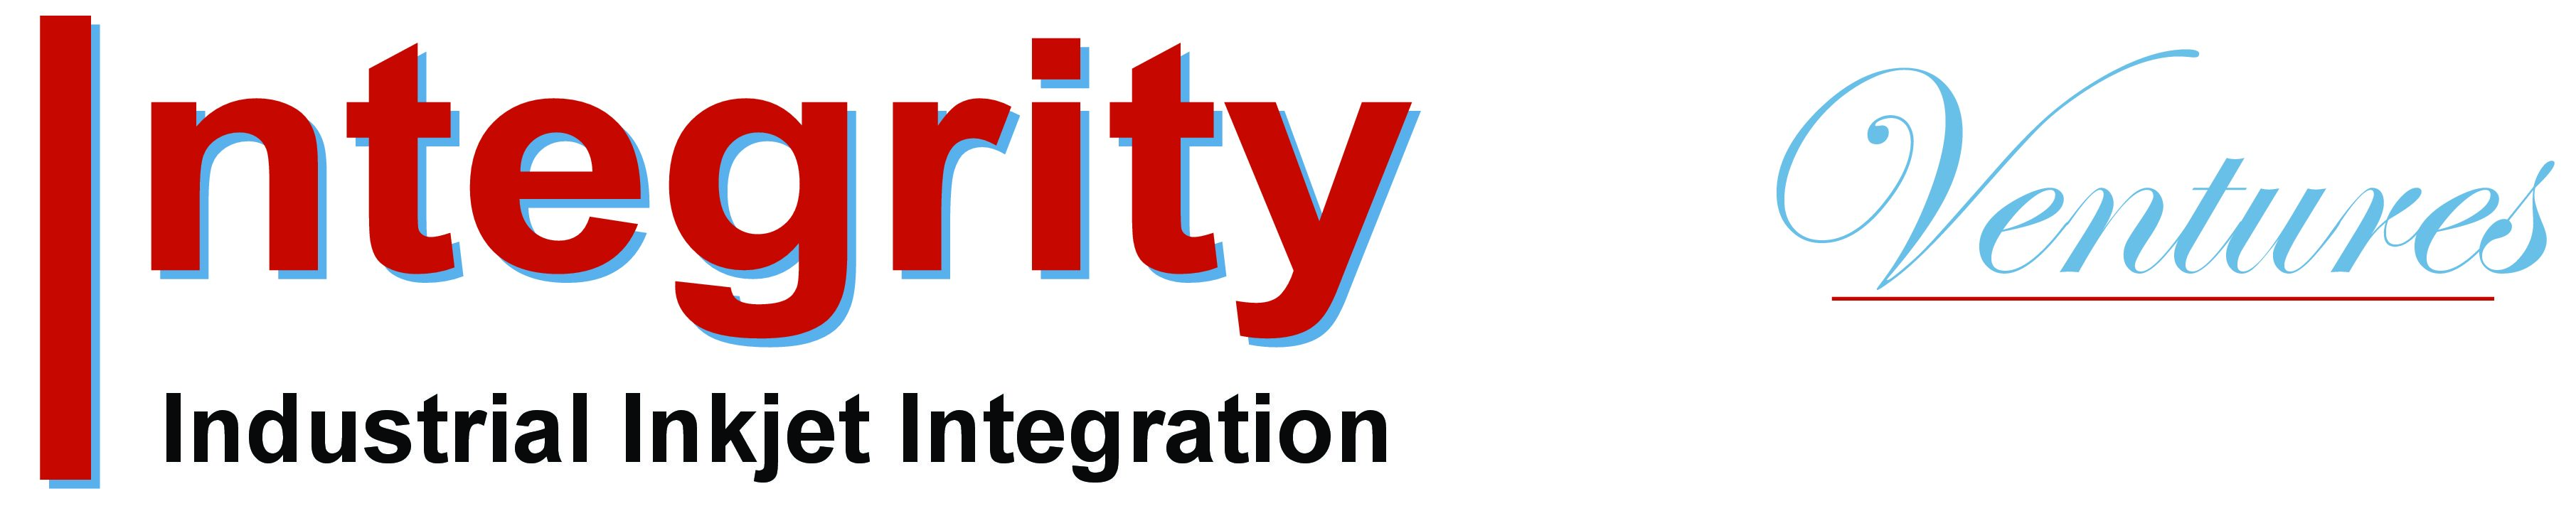 Integrity Integration Launches Integrity Ventures